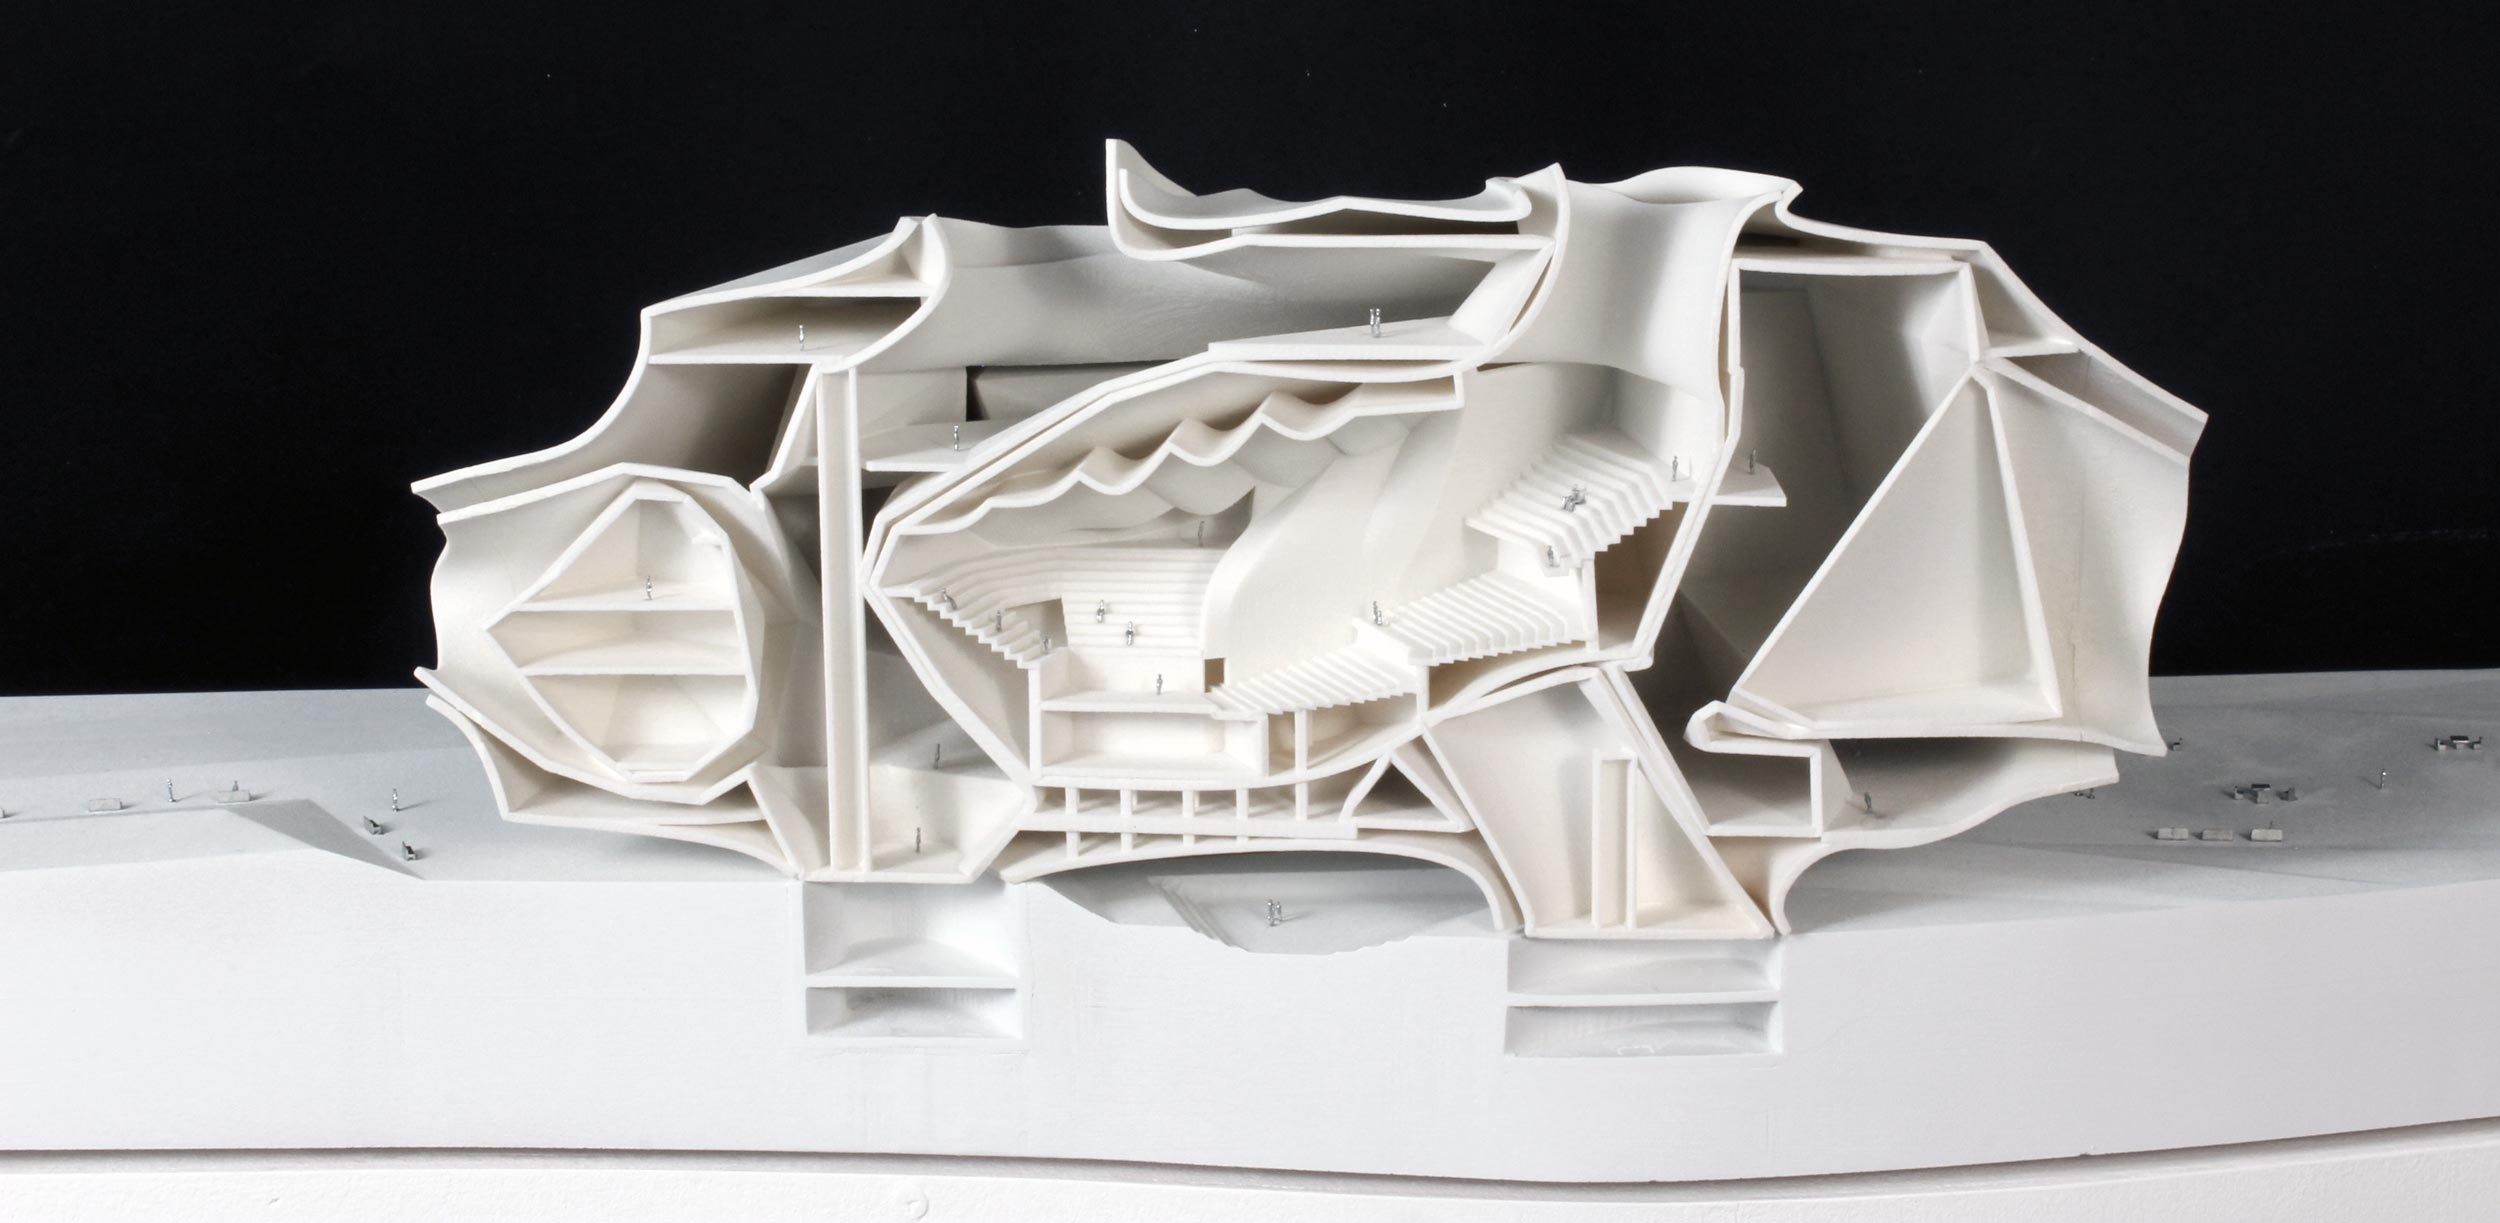 3d Printing For Architecture And Design Students Lgm